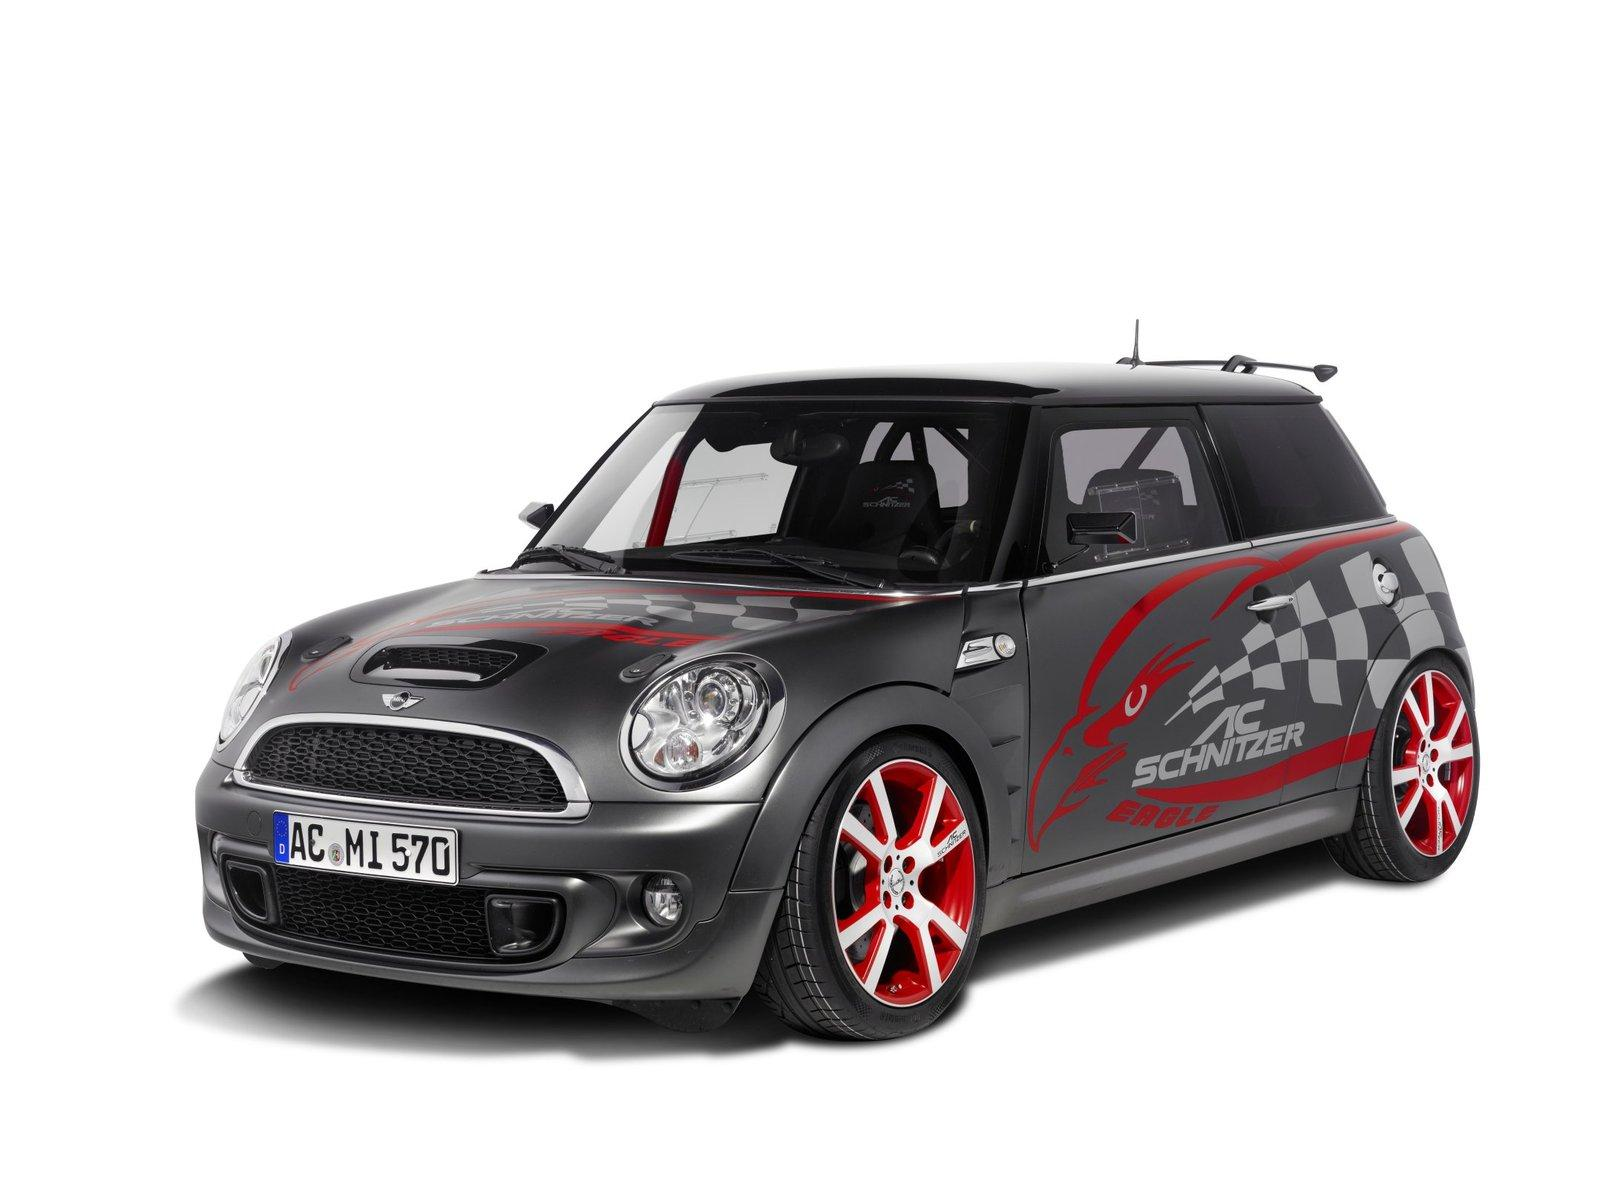 mini cooper s grand prix jwc edition specs photos. Black Bedroom Furniture Sets. Home Design Ideas